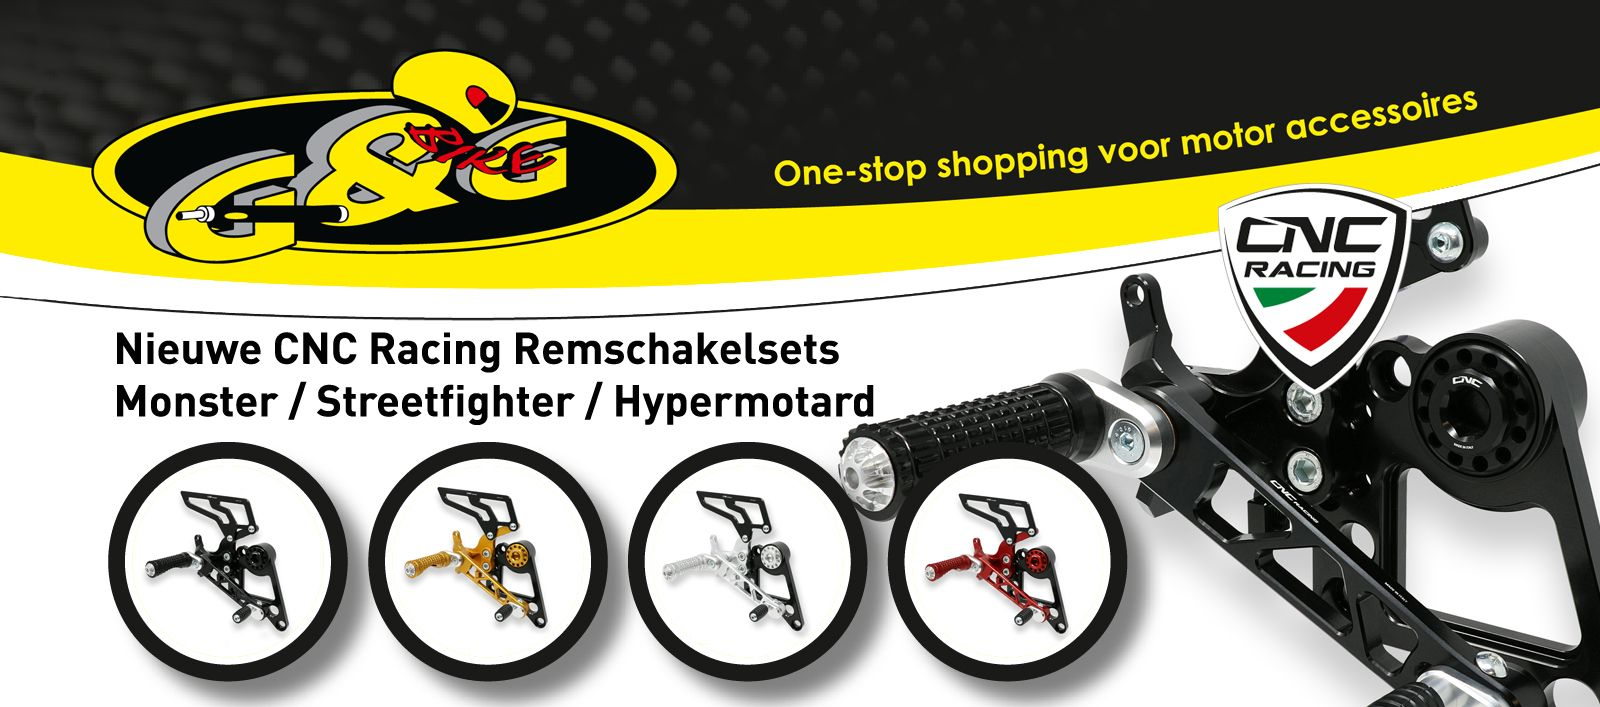 CNC Racing remschakelsets Monster Hypermotard Streetfighter